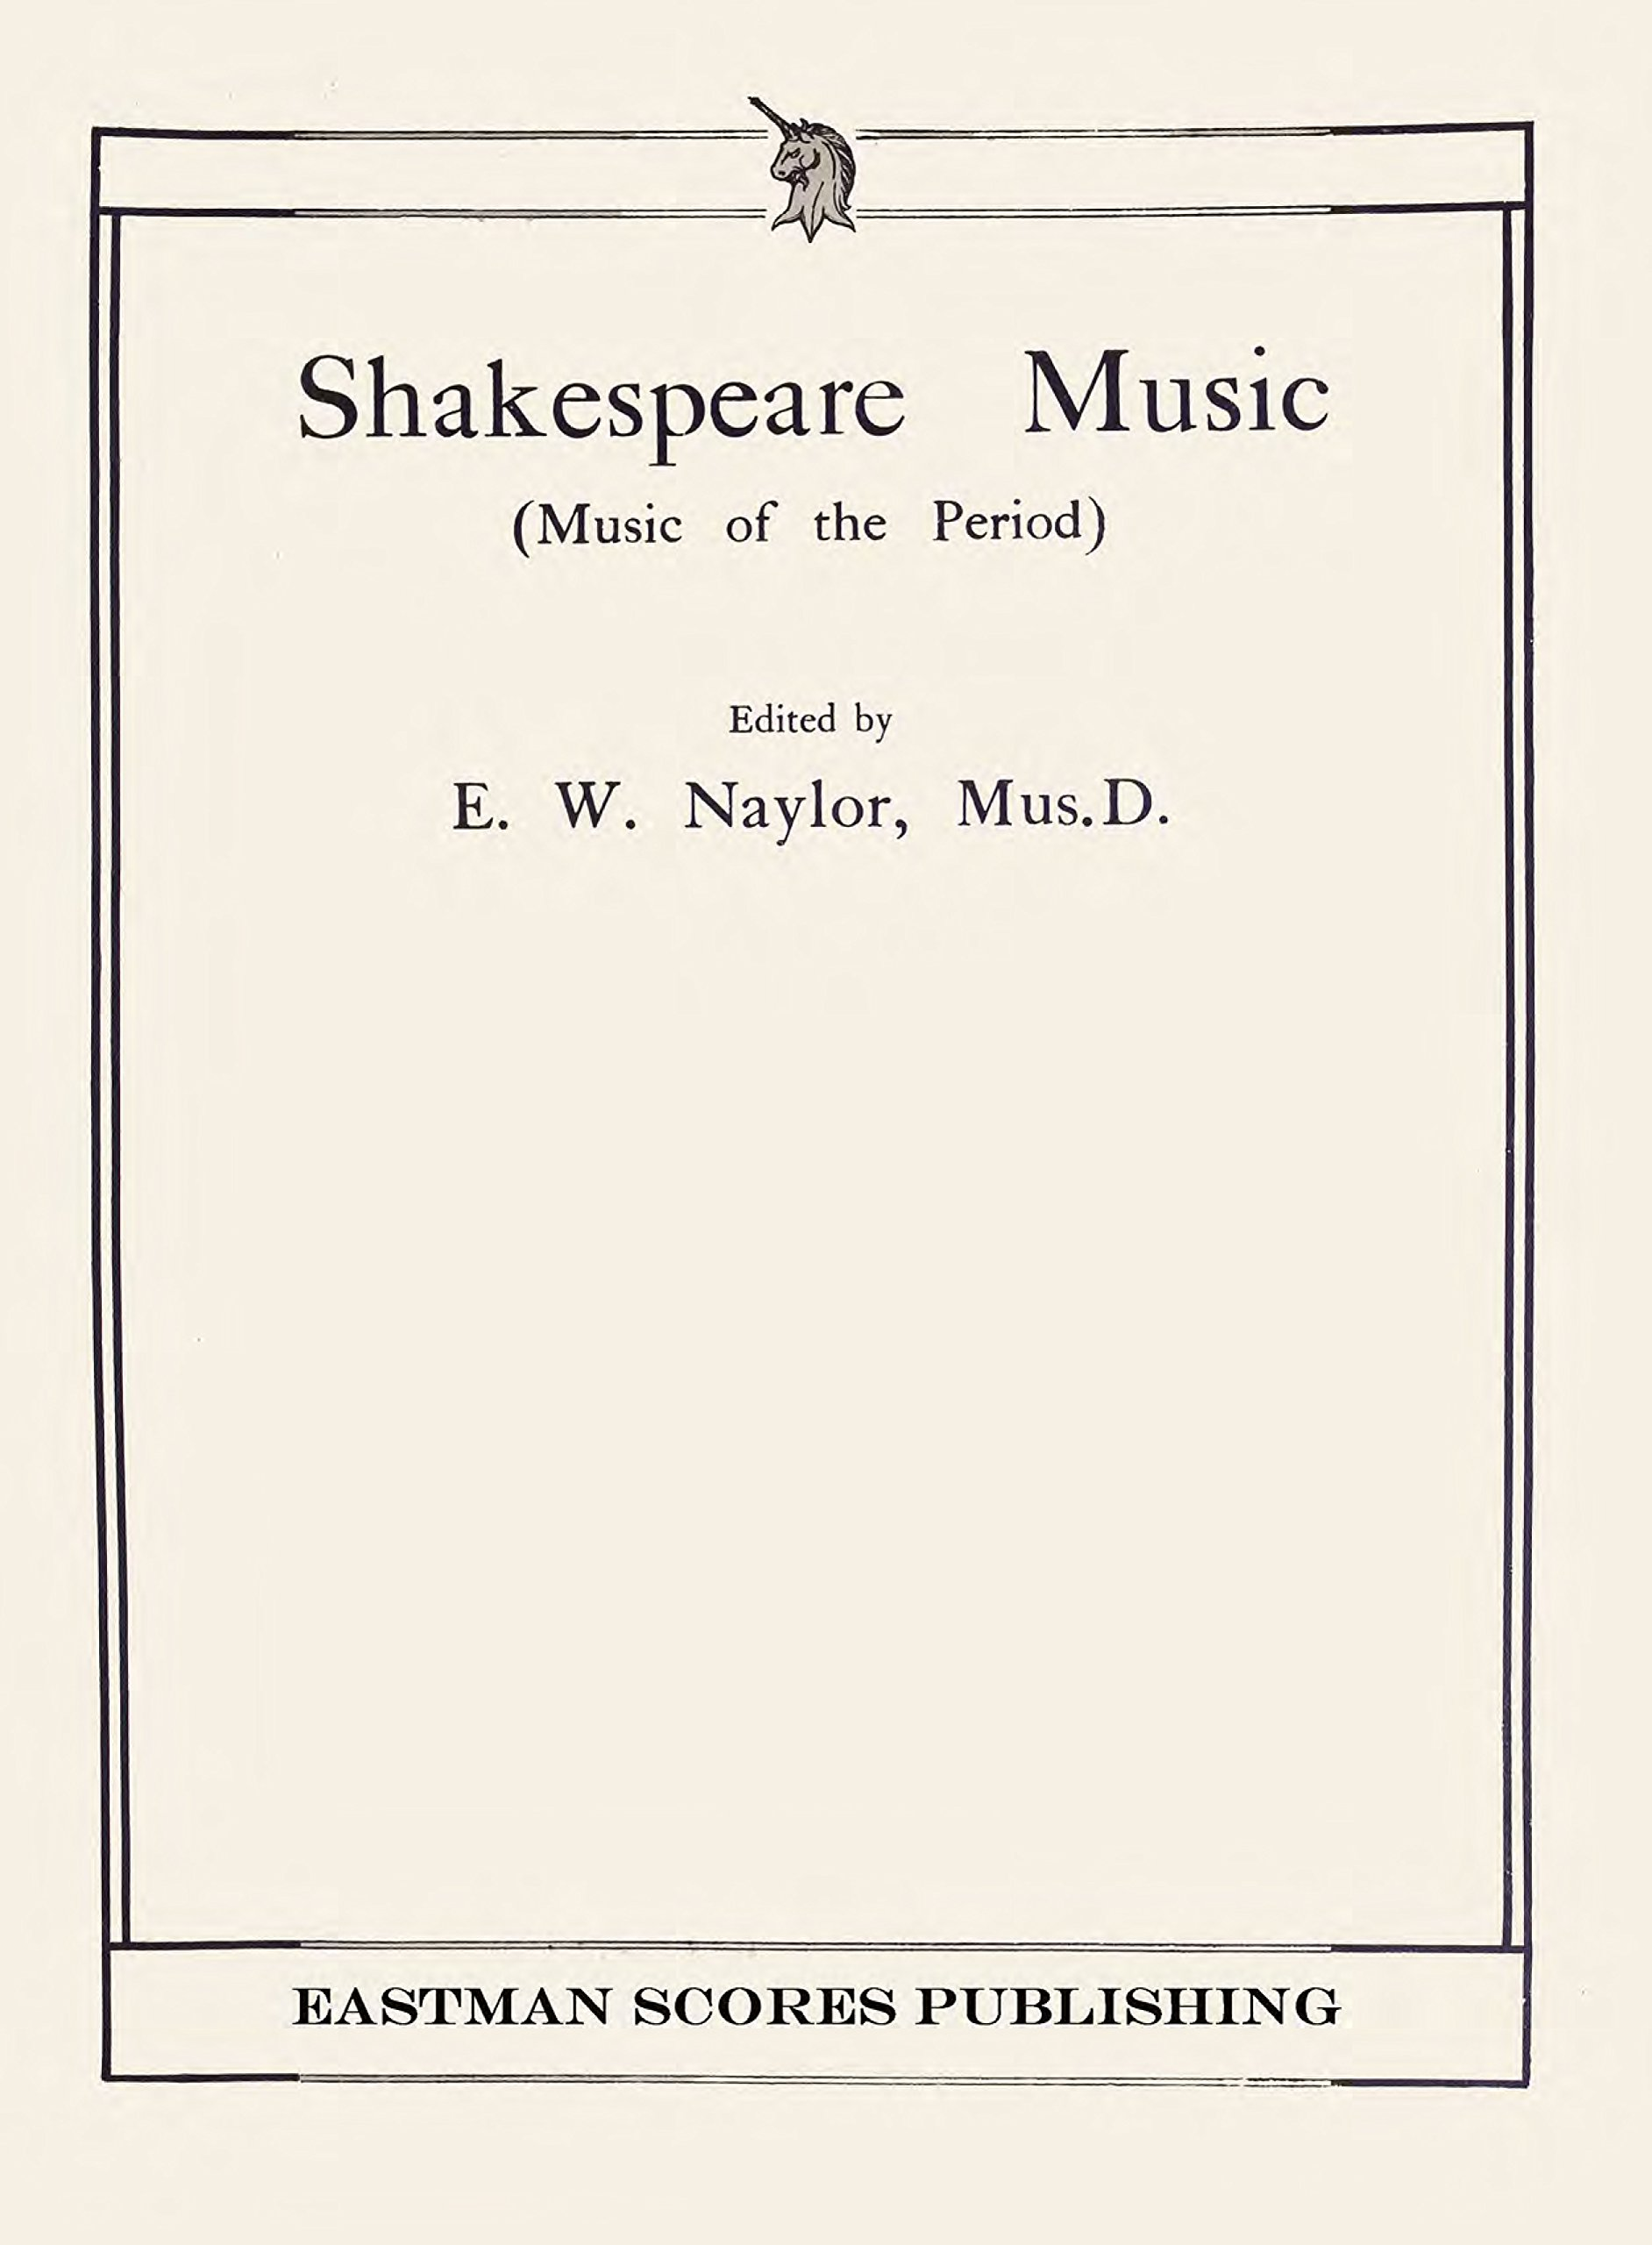 naylor edward w shakespeare music music of the period